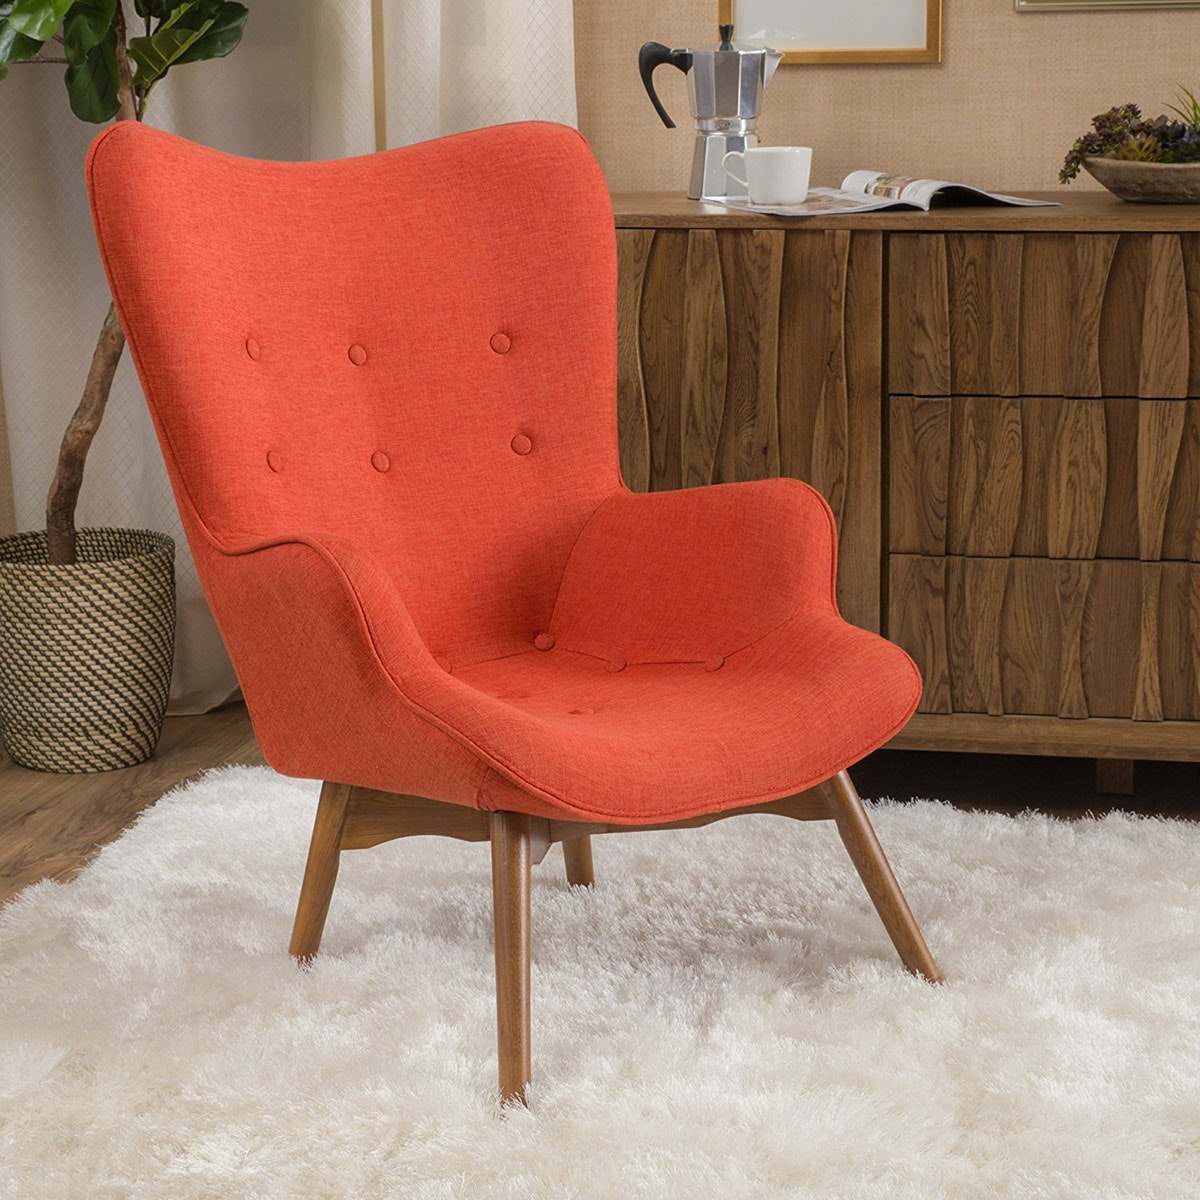 Bring in a pop of color with an affordable accent chair